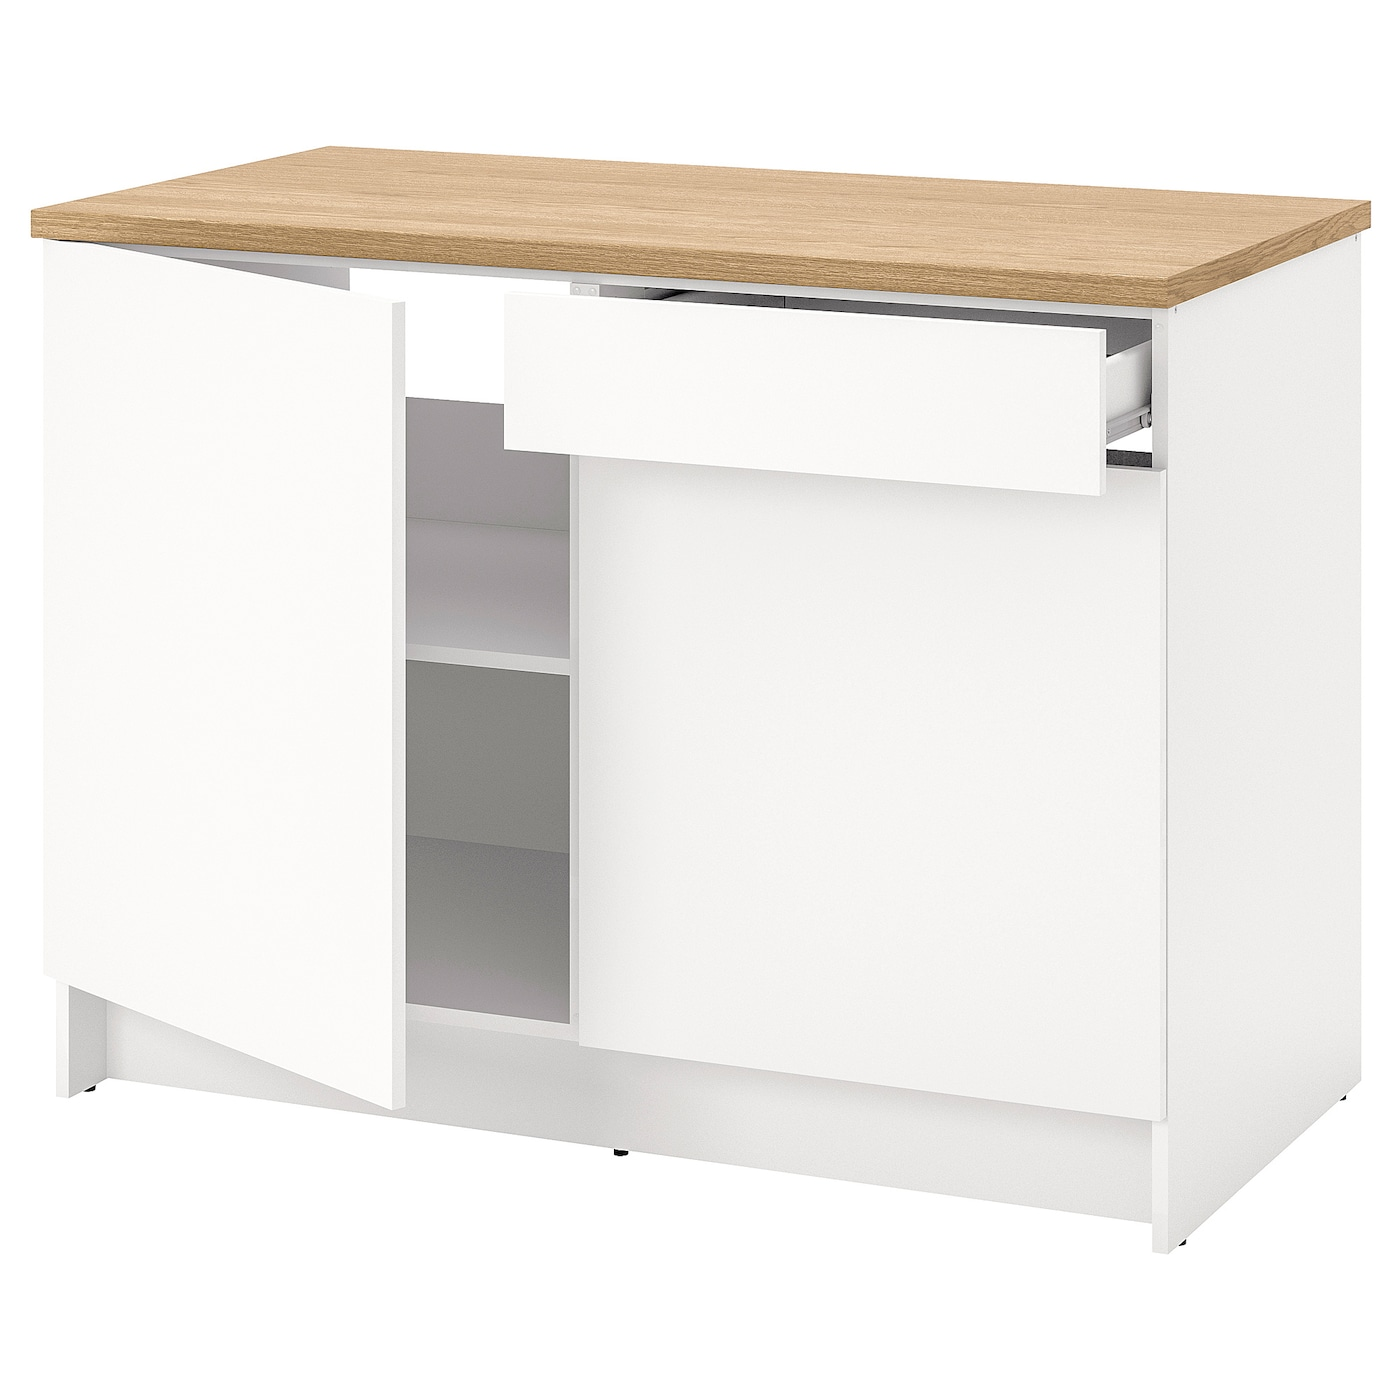 KNOXHULT Base cabinet with doors and drawer - white 12 cm